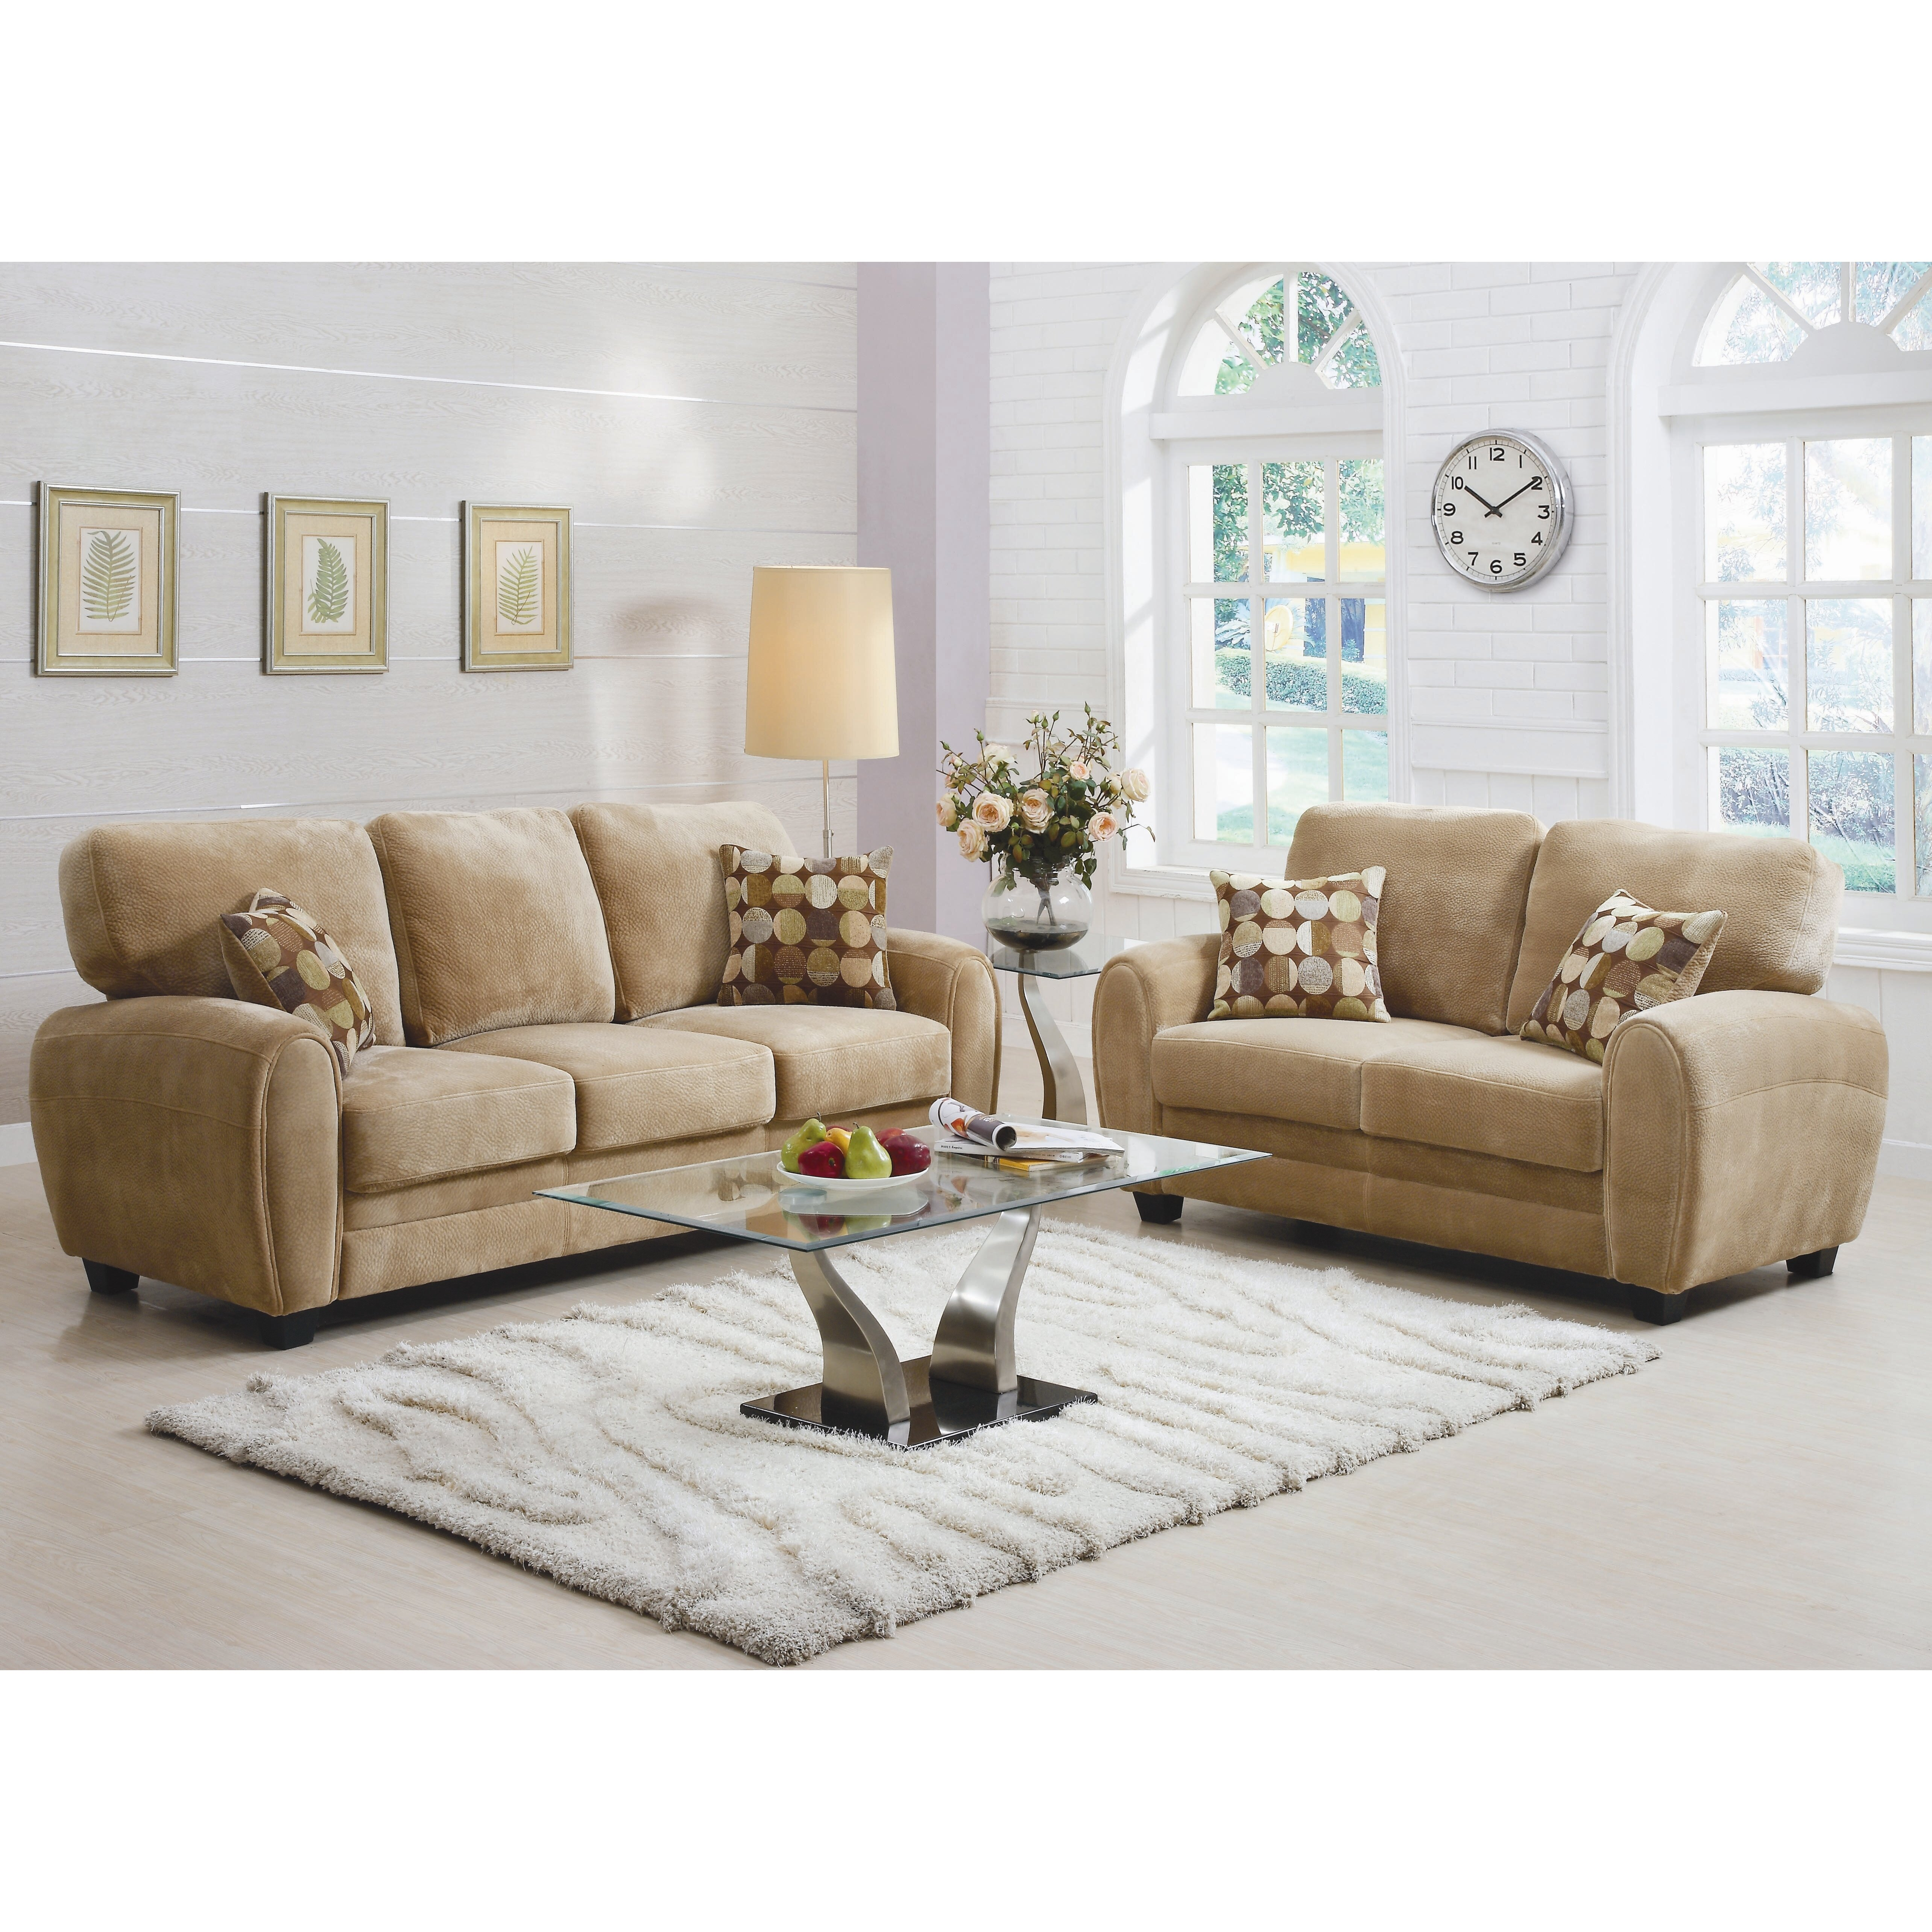 woodhaven hill rubin living room collection reviews wayfair. Black Bedroom Furniture Sets. Home Design Ideas